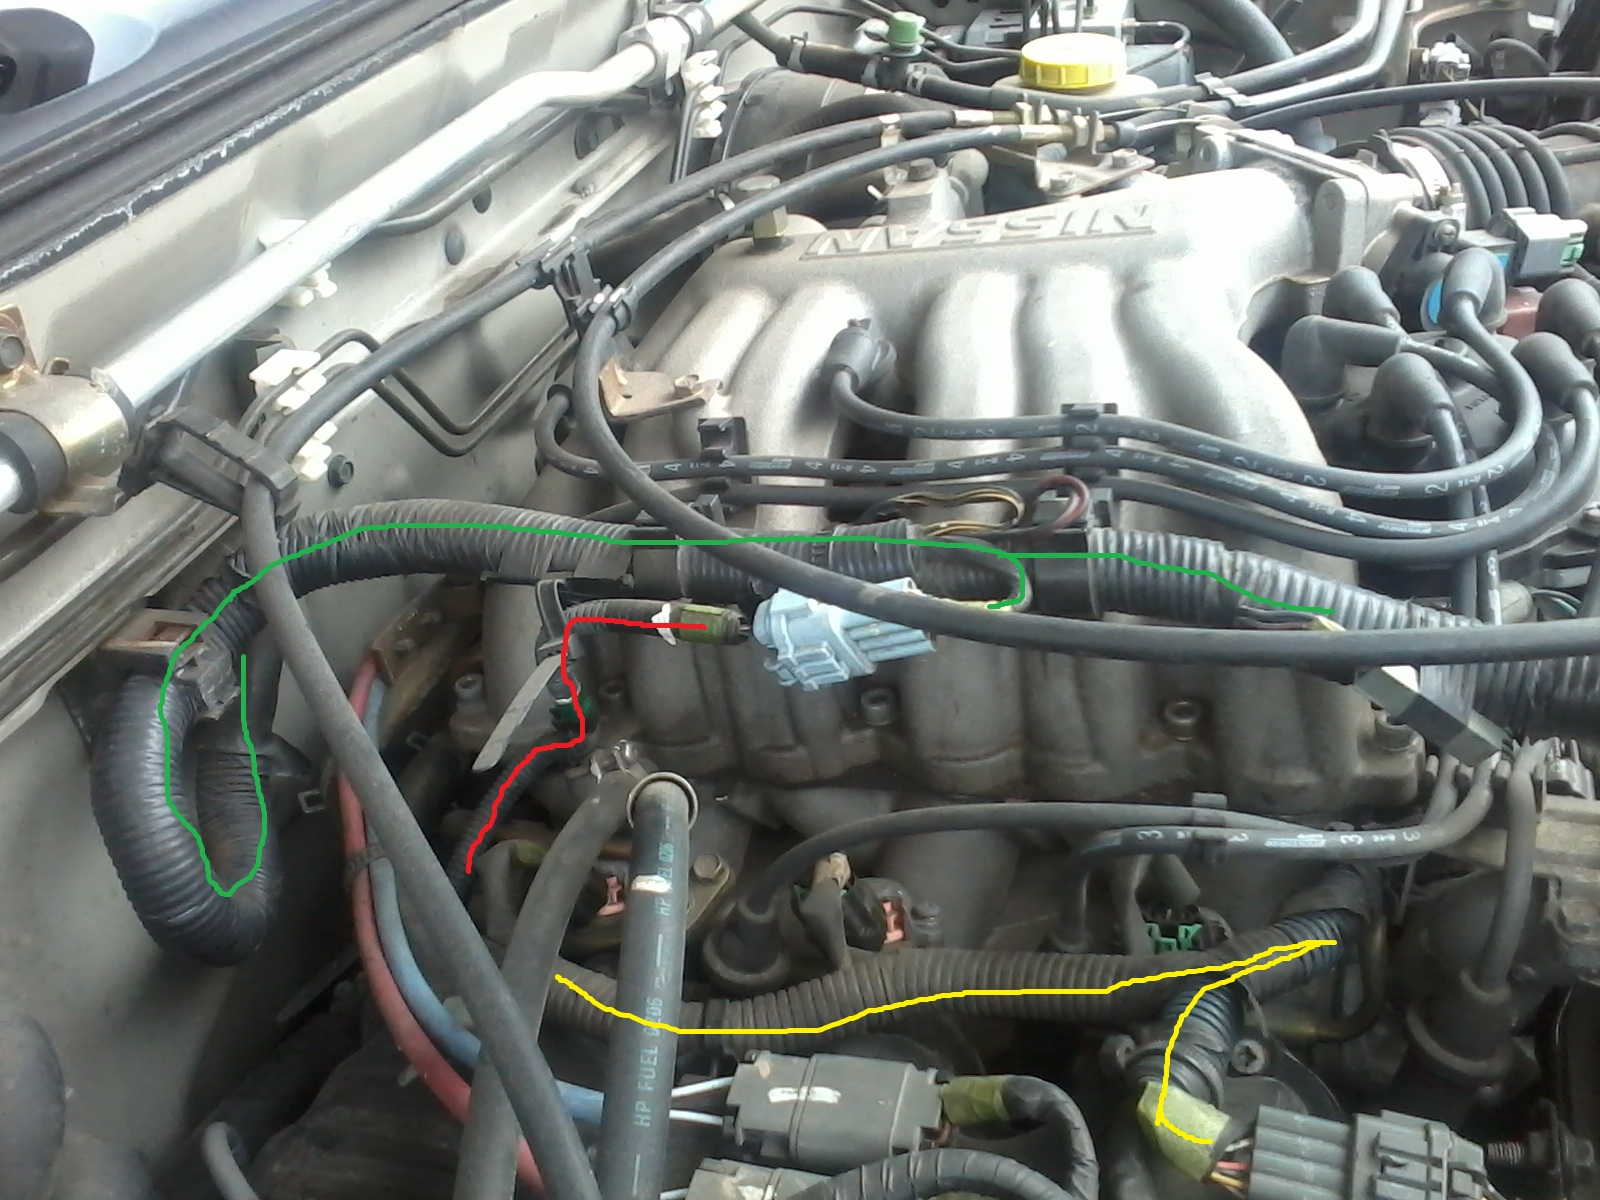 2010 07 28_211347_Photo0010 need a part of wiring harness above valve cover eight wire nissan frontier wiring harness at soozxer.org